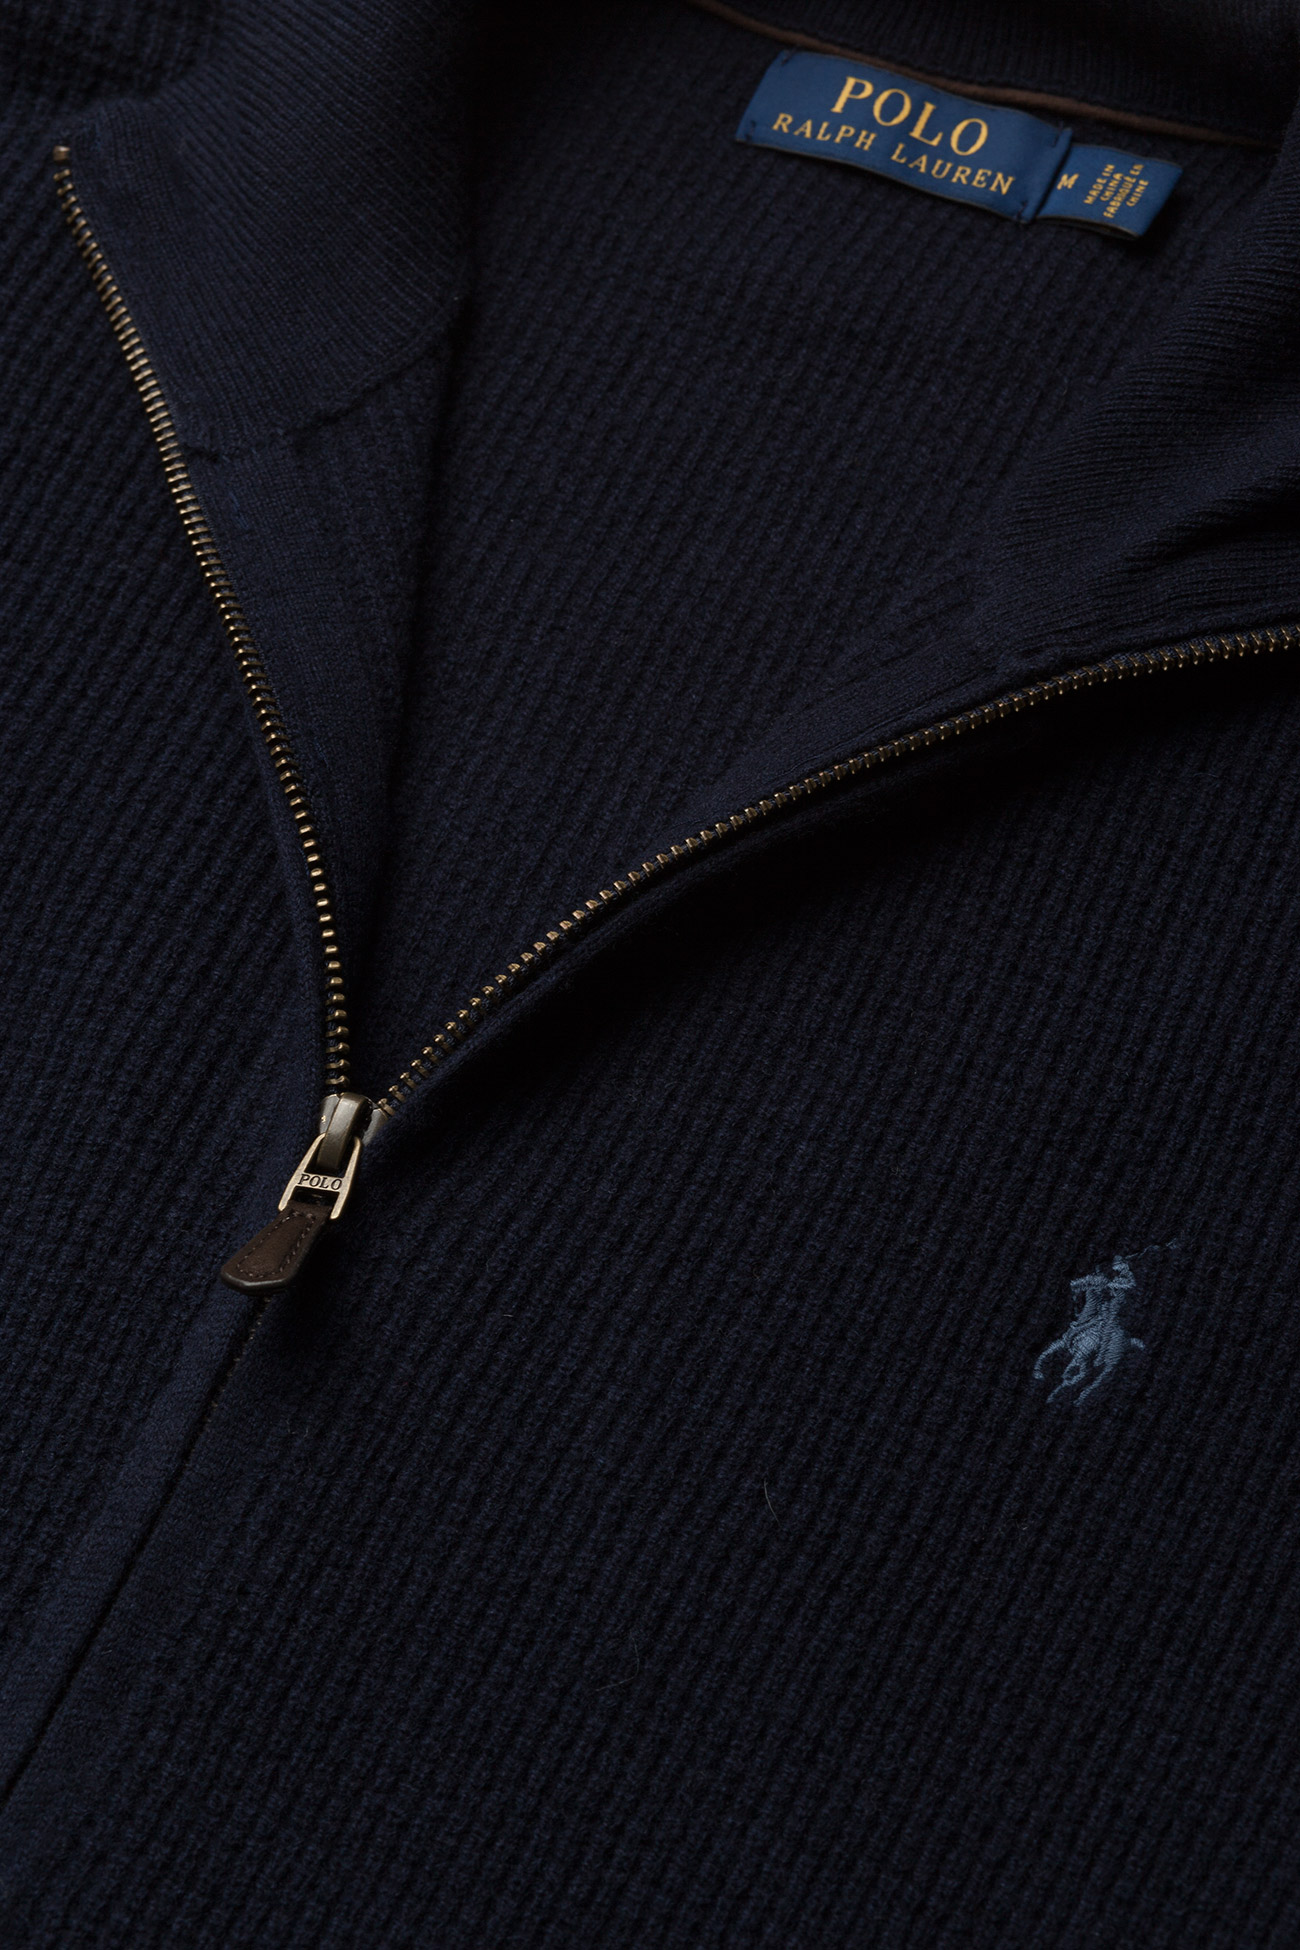 zip Wool Ralph NavyPolo Merino Sweaterhunter Lauren Full uTKcFJl31